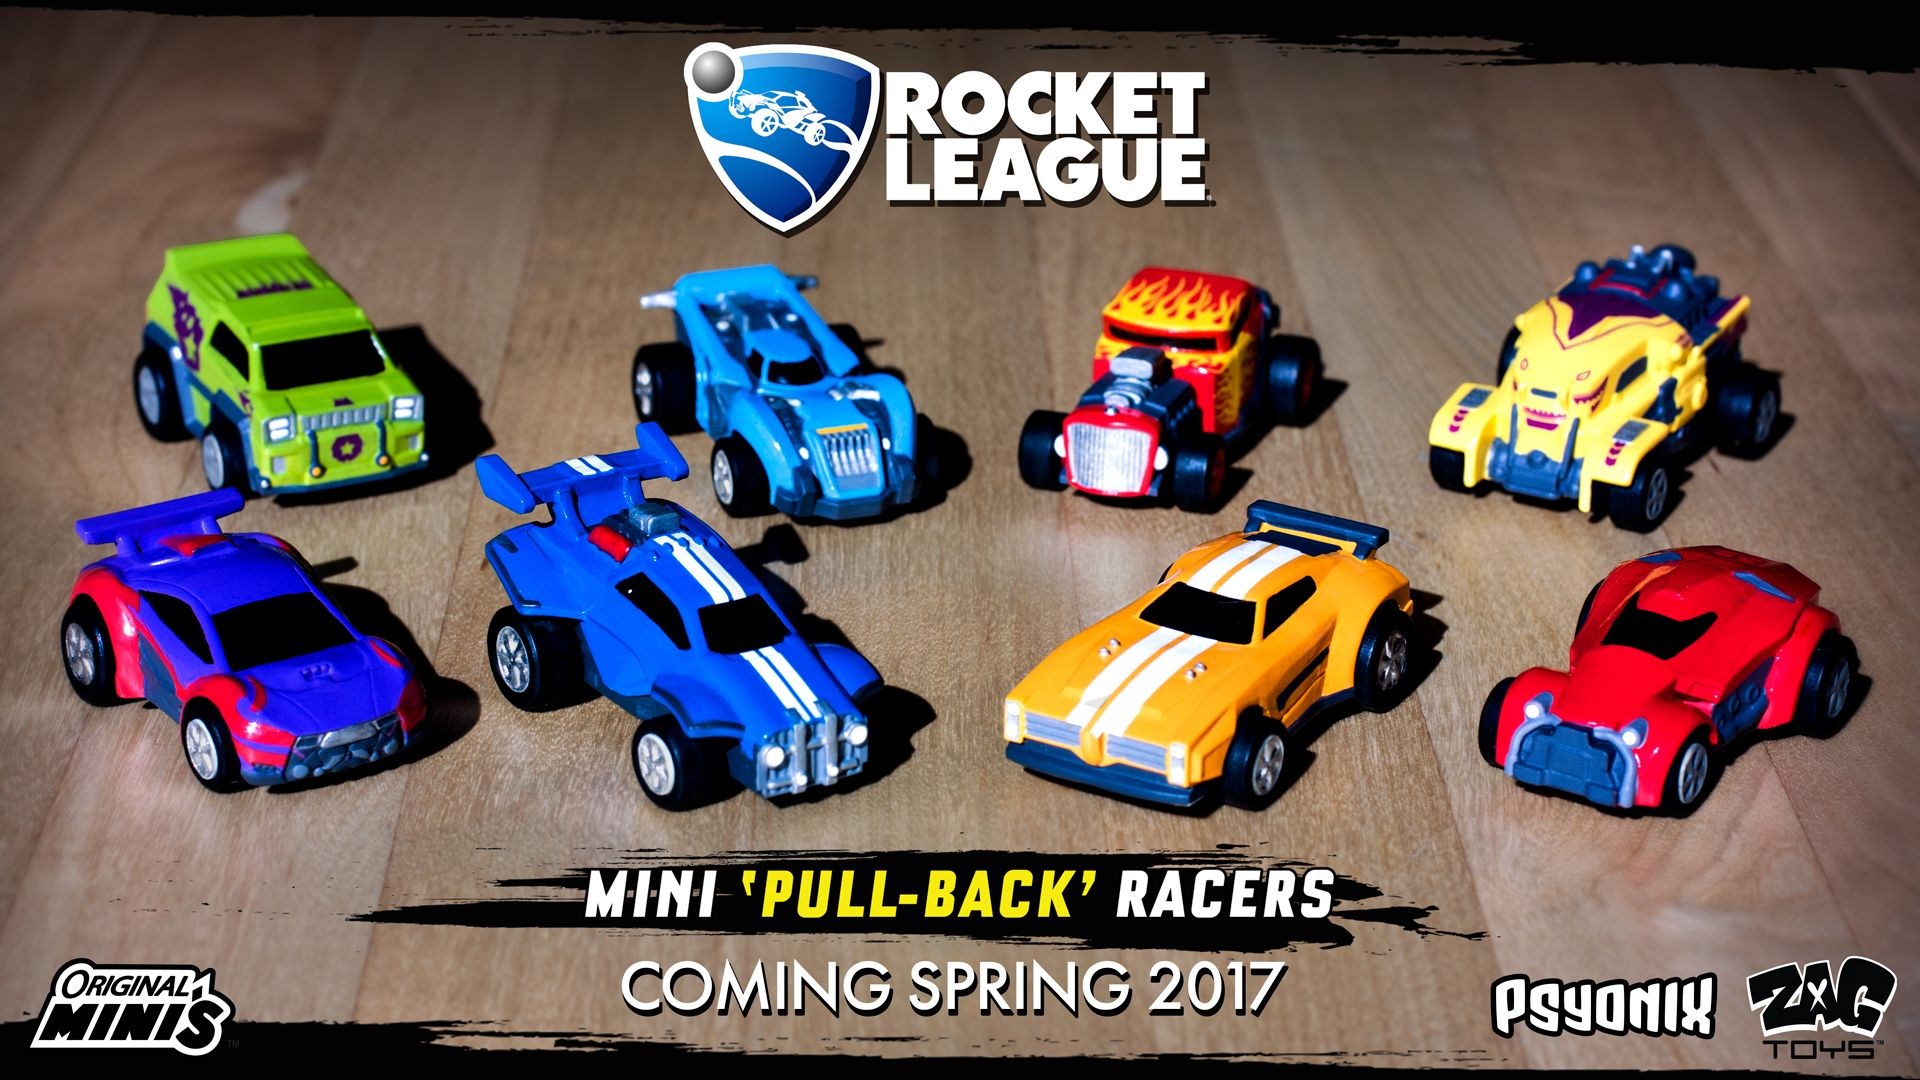 'Rocket League' cars are the new hot wheels In Rocket